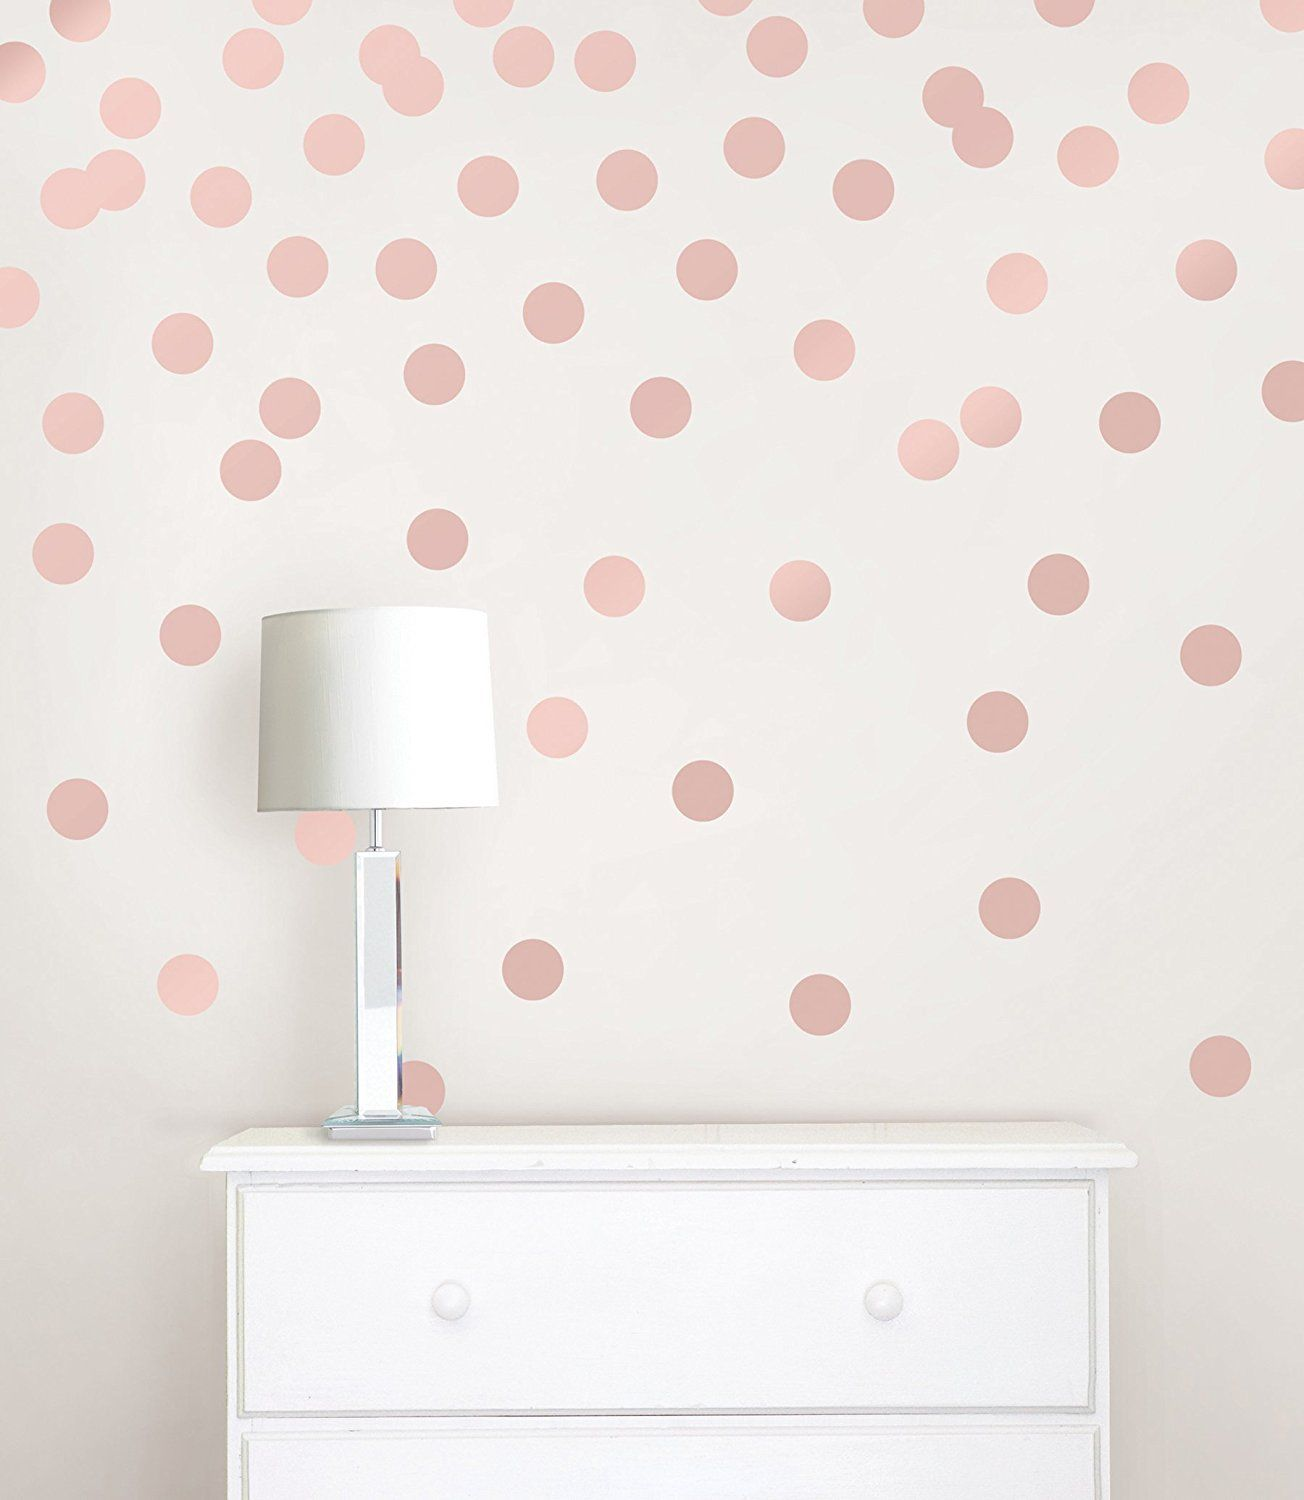 Wall Pops WPD2137 Rose Gold Confetti Dot Decals - - Amazon.com ...